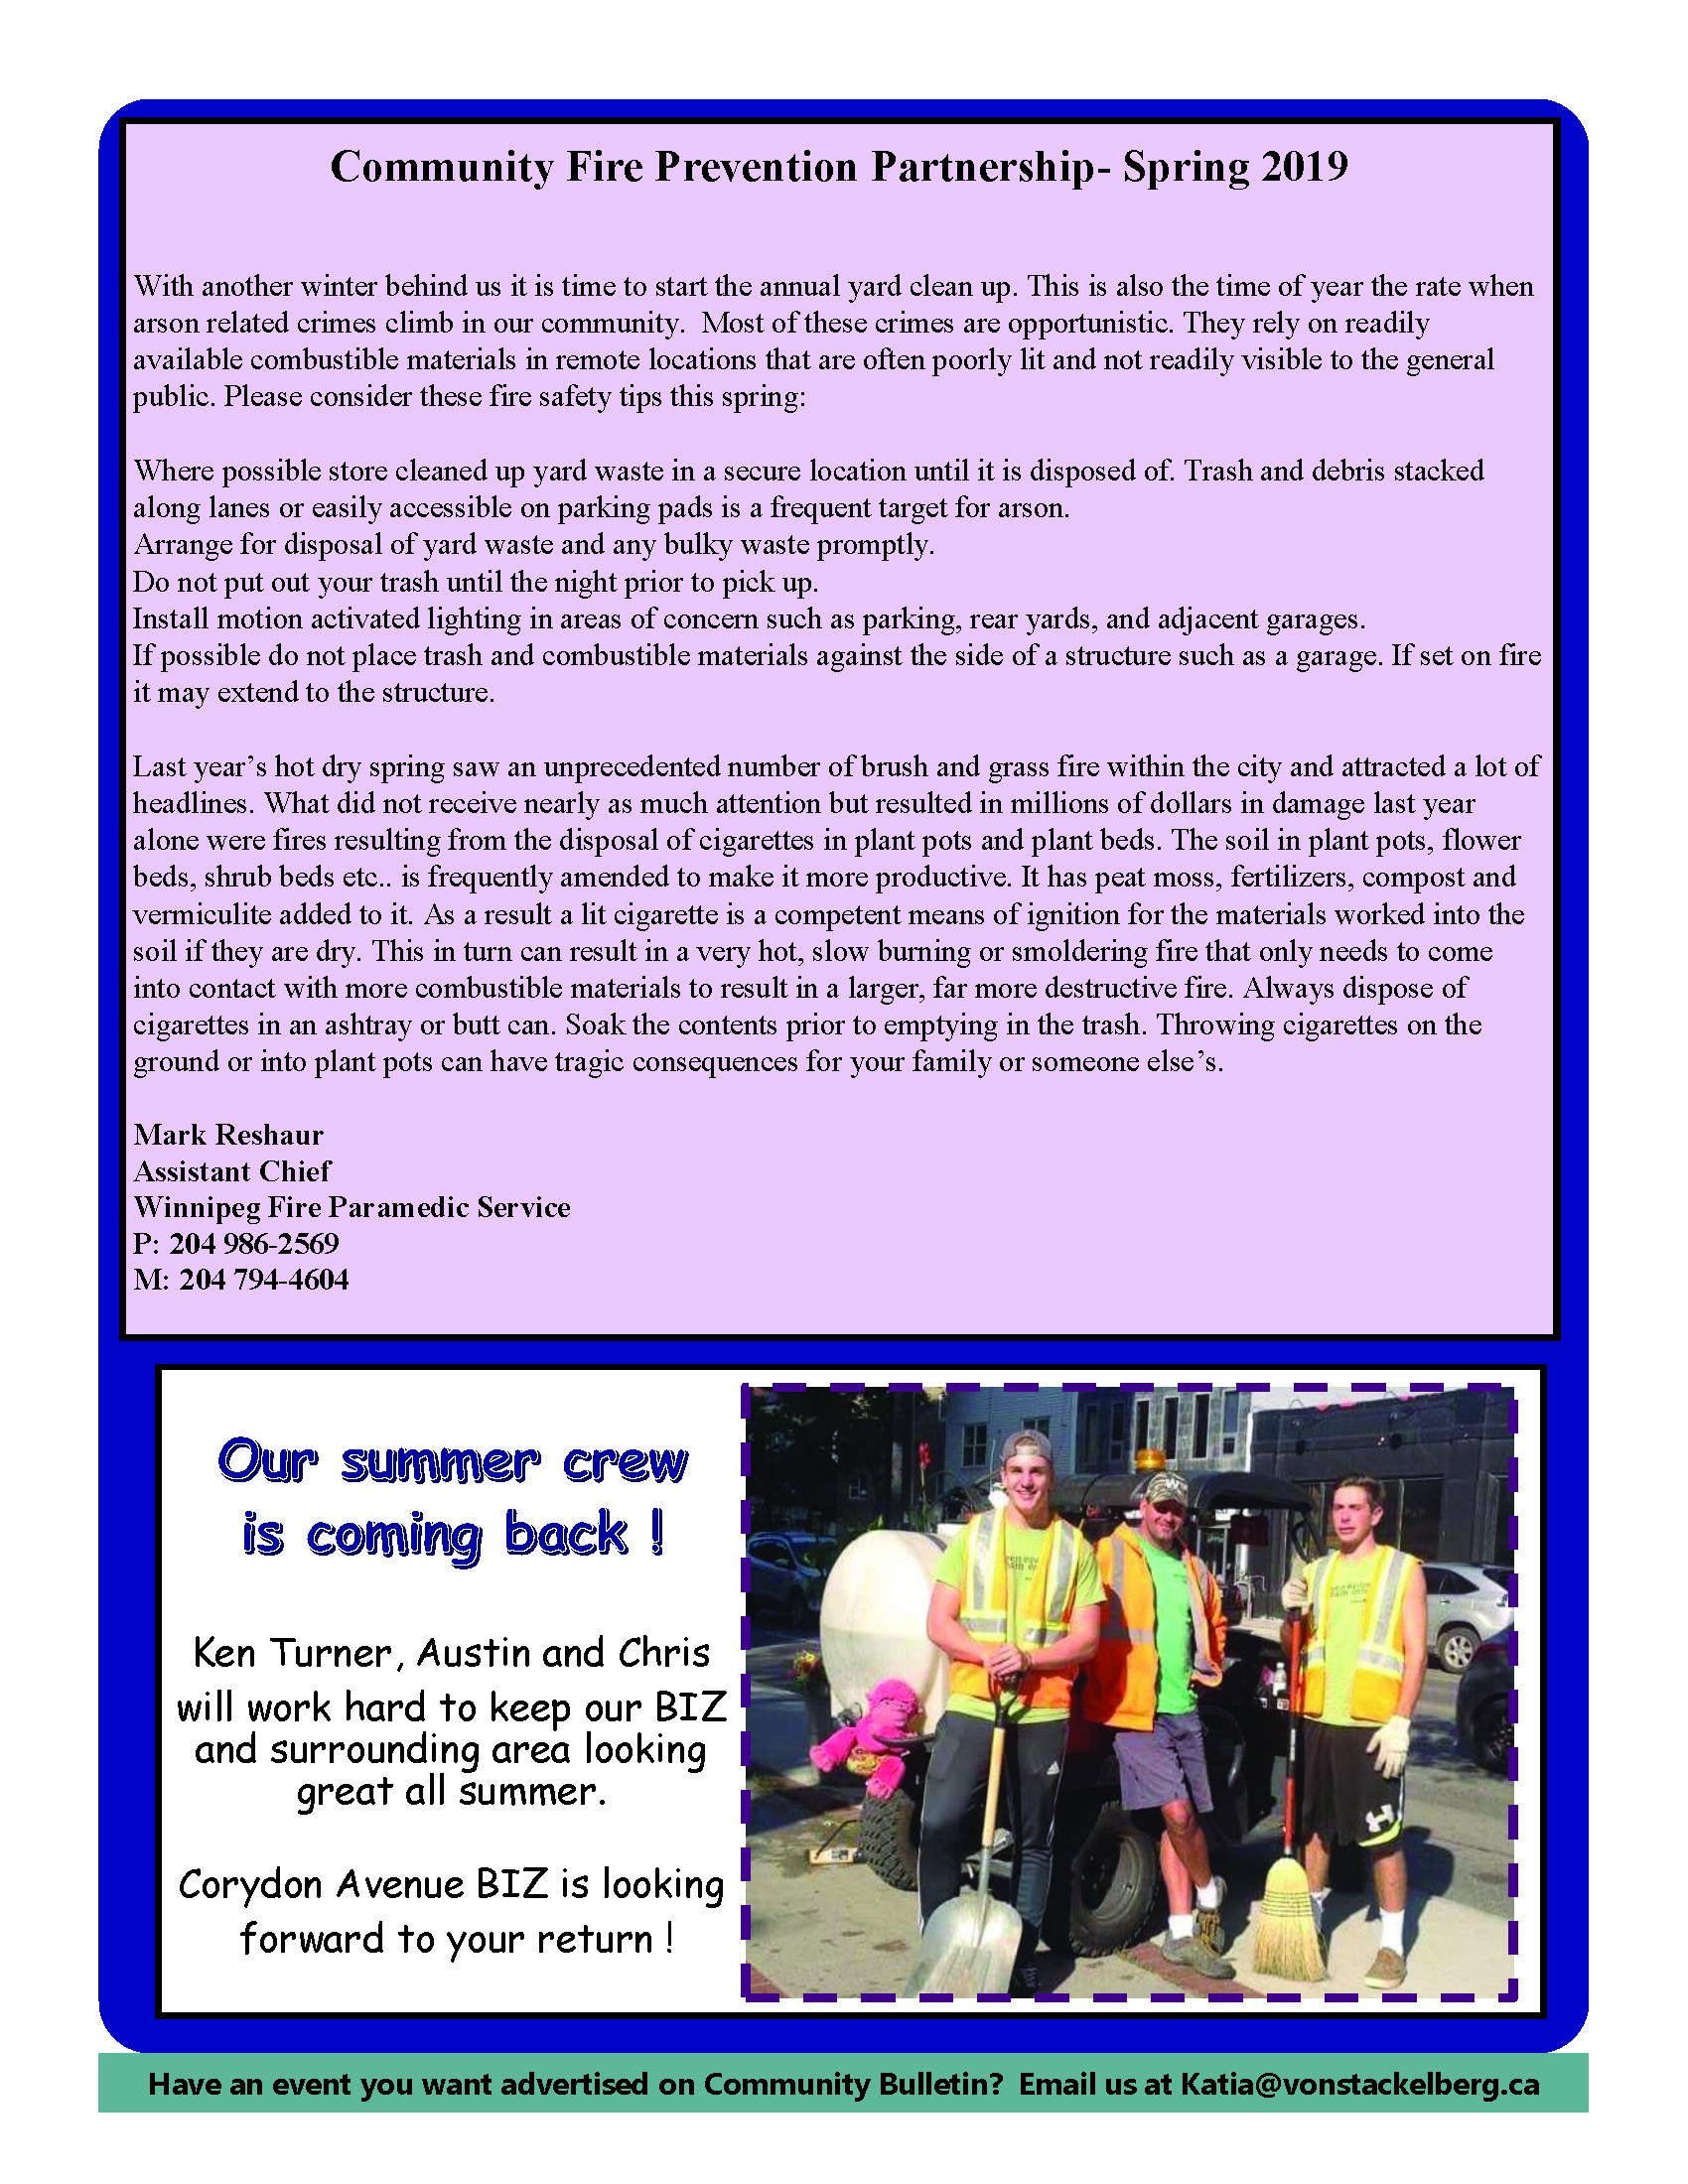 2019 Summer-CORYDON AVE. BIZ Newsletter_Page_04.jpg